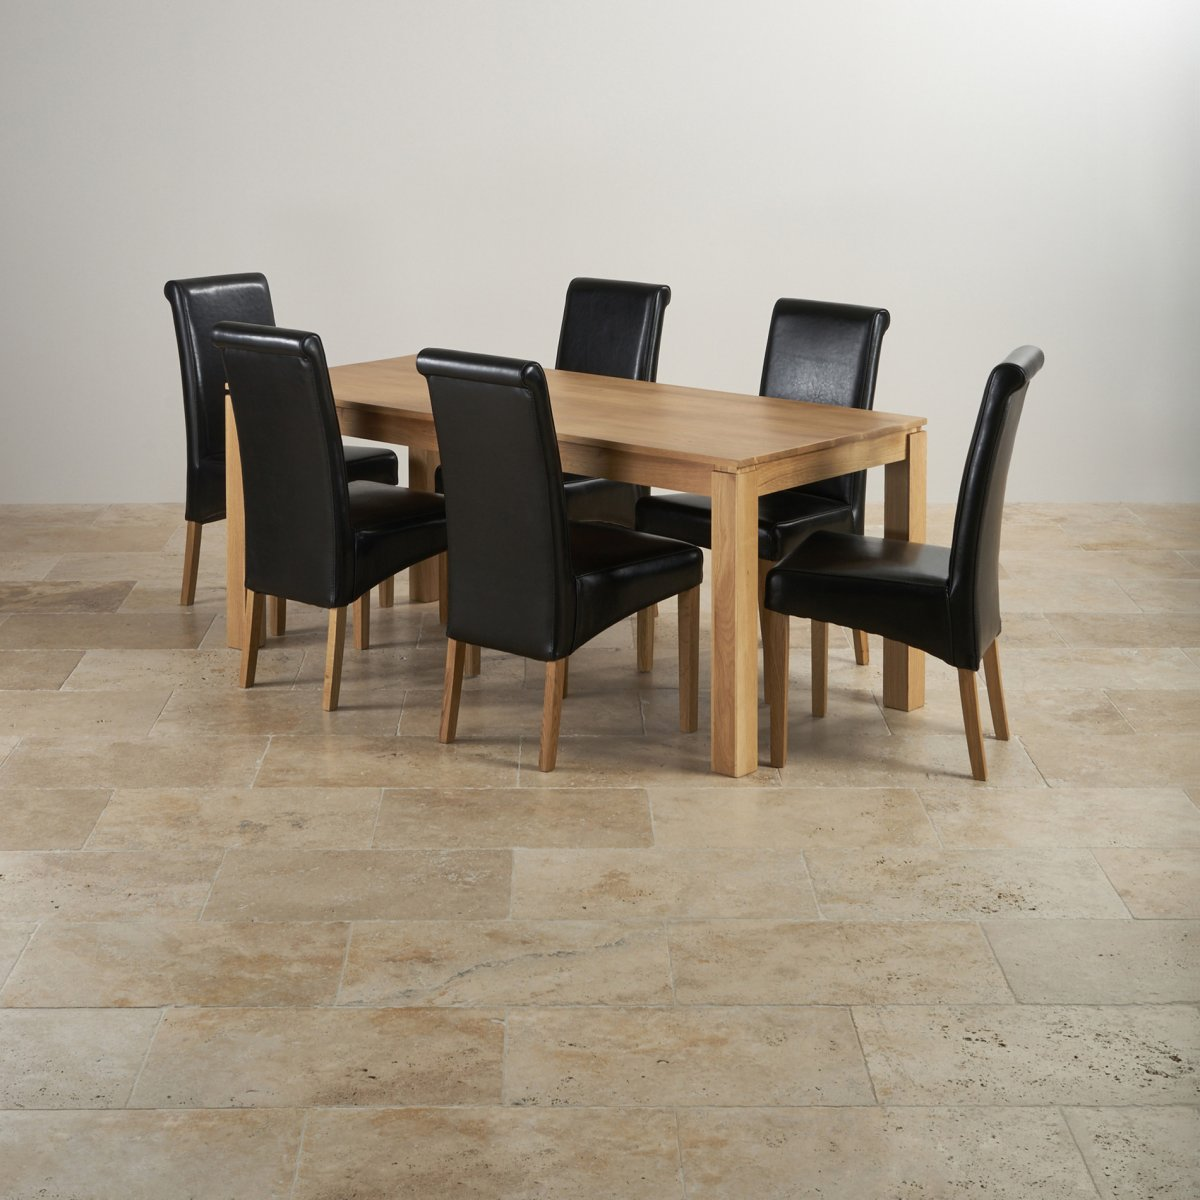 Galway Dining Set In Natural Oak: Dining Table + 6 Leather